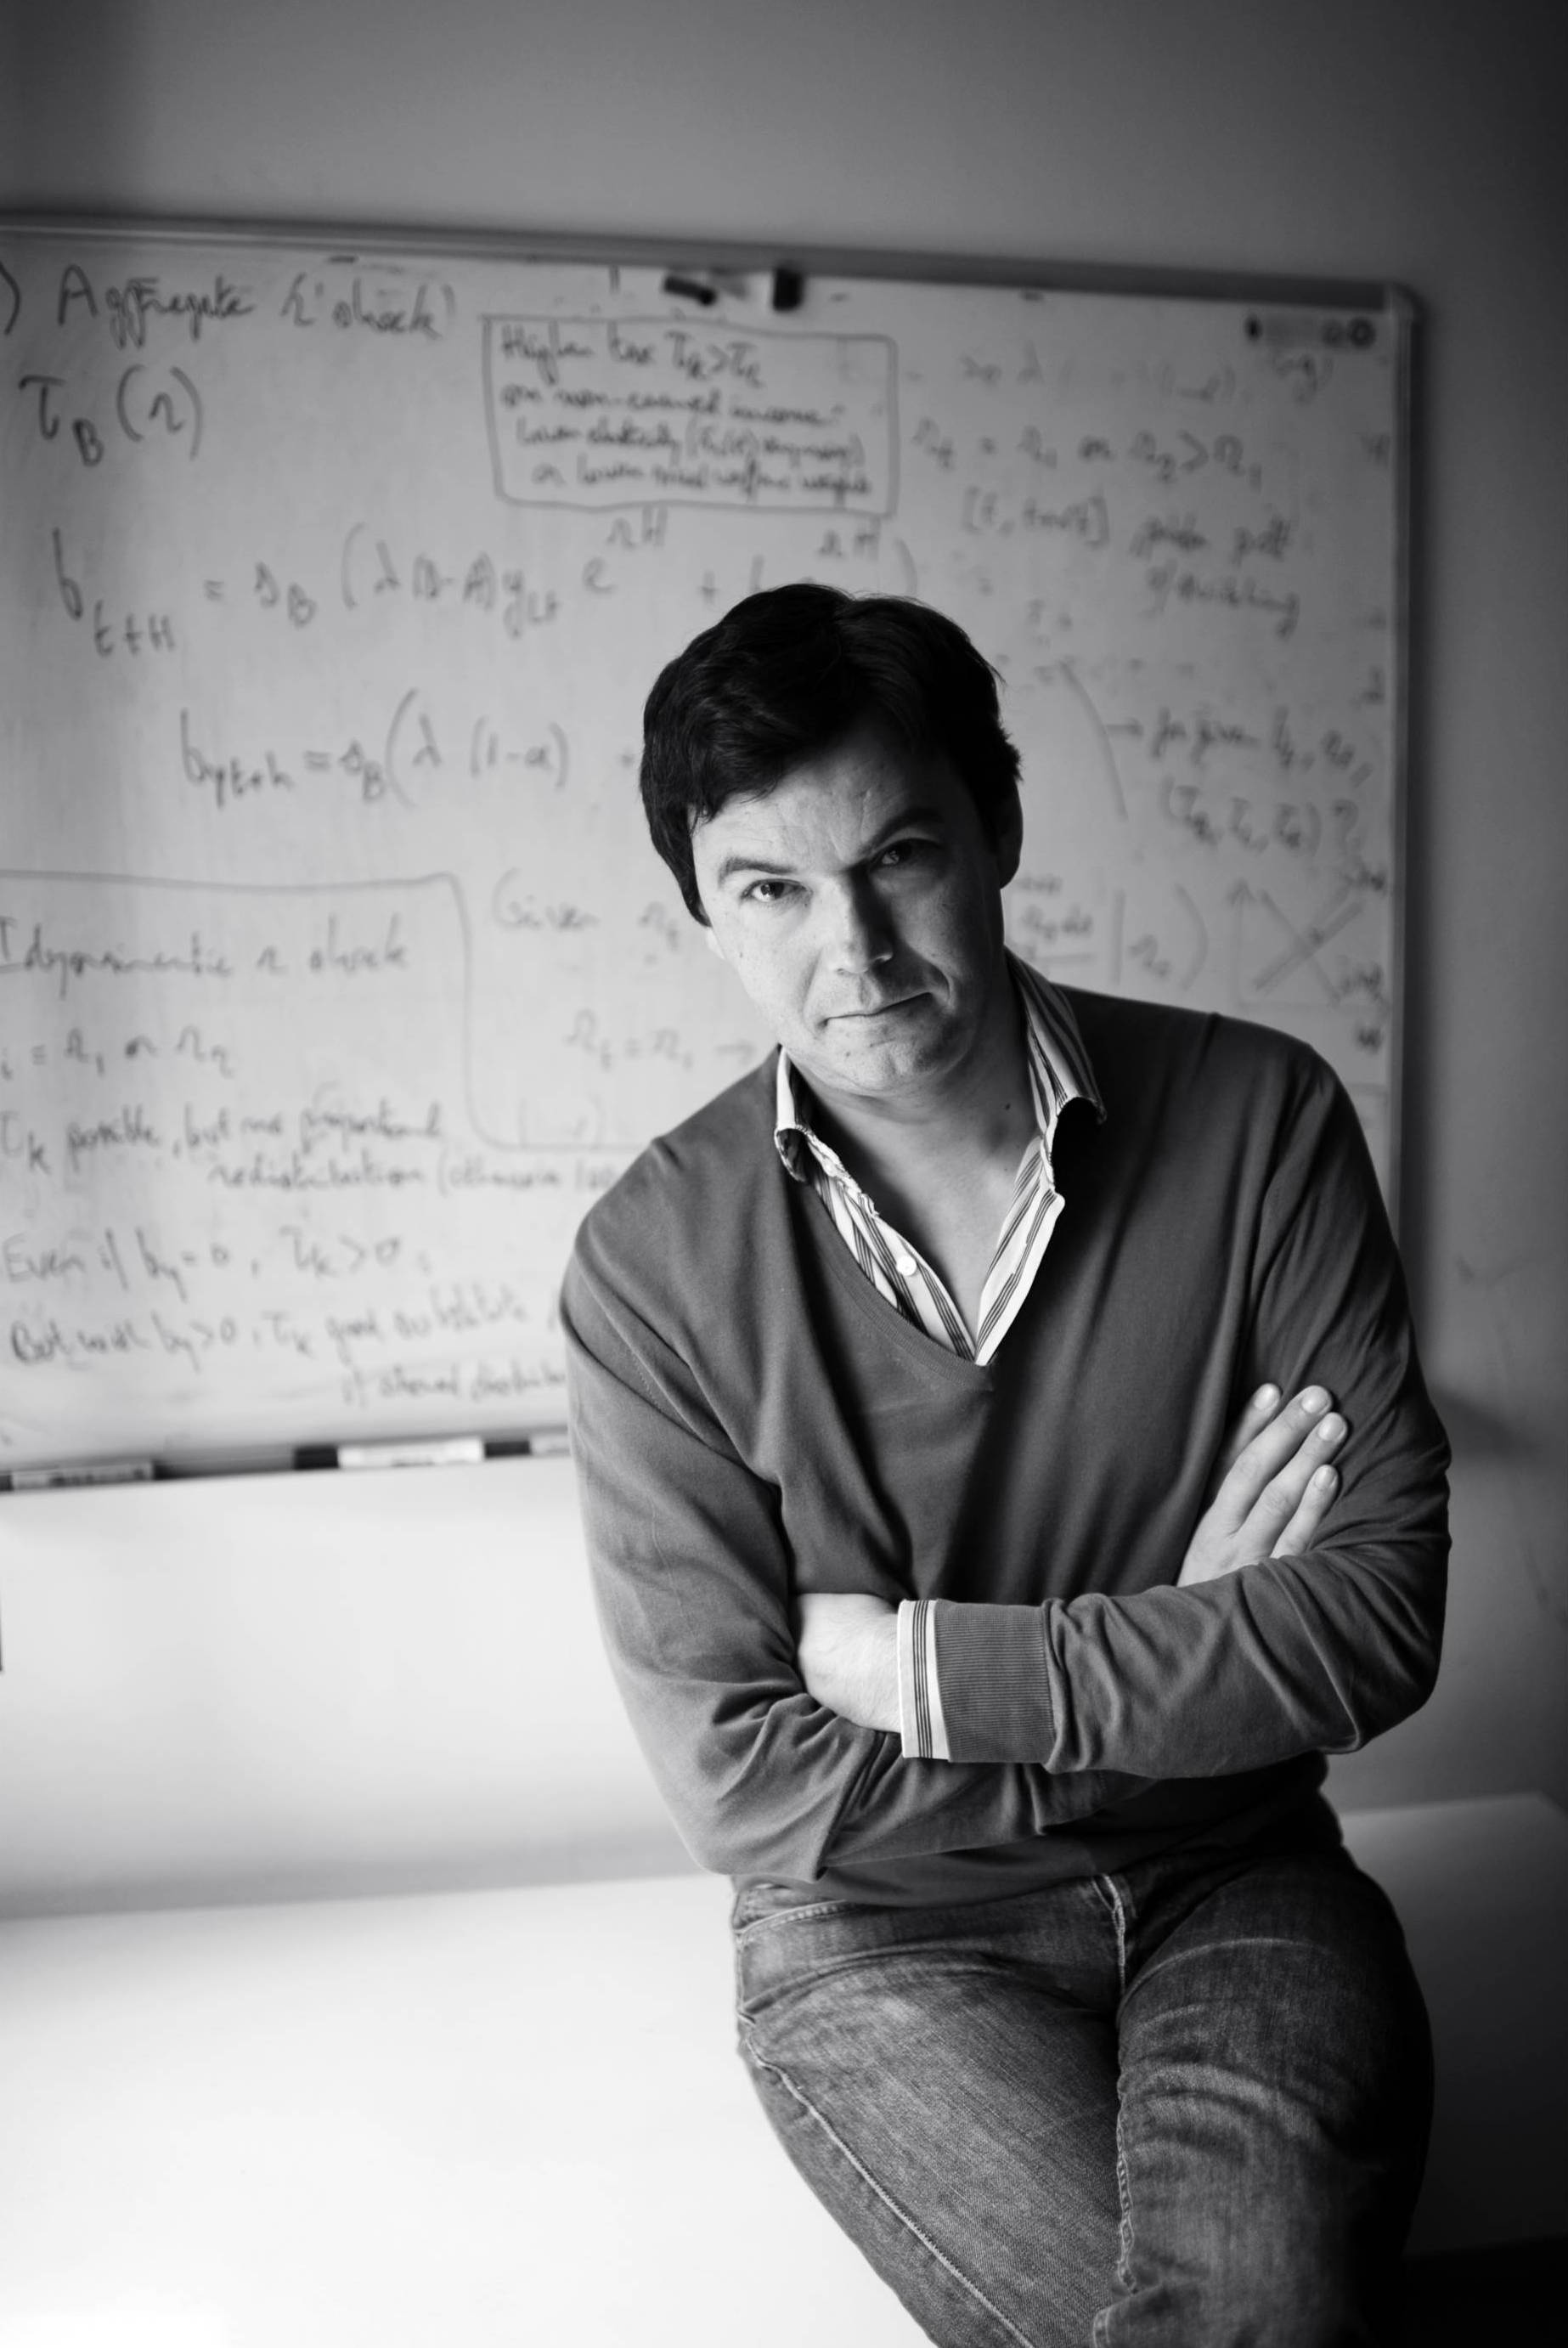 French economist Thomas Piketty, in his new book, sounds a grim warning: The U.S. economy is beginning to decay into the aristocratic Europe of the 19th century.